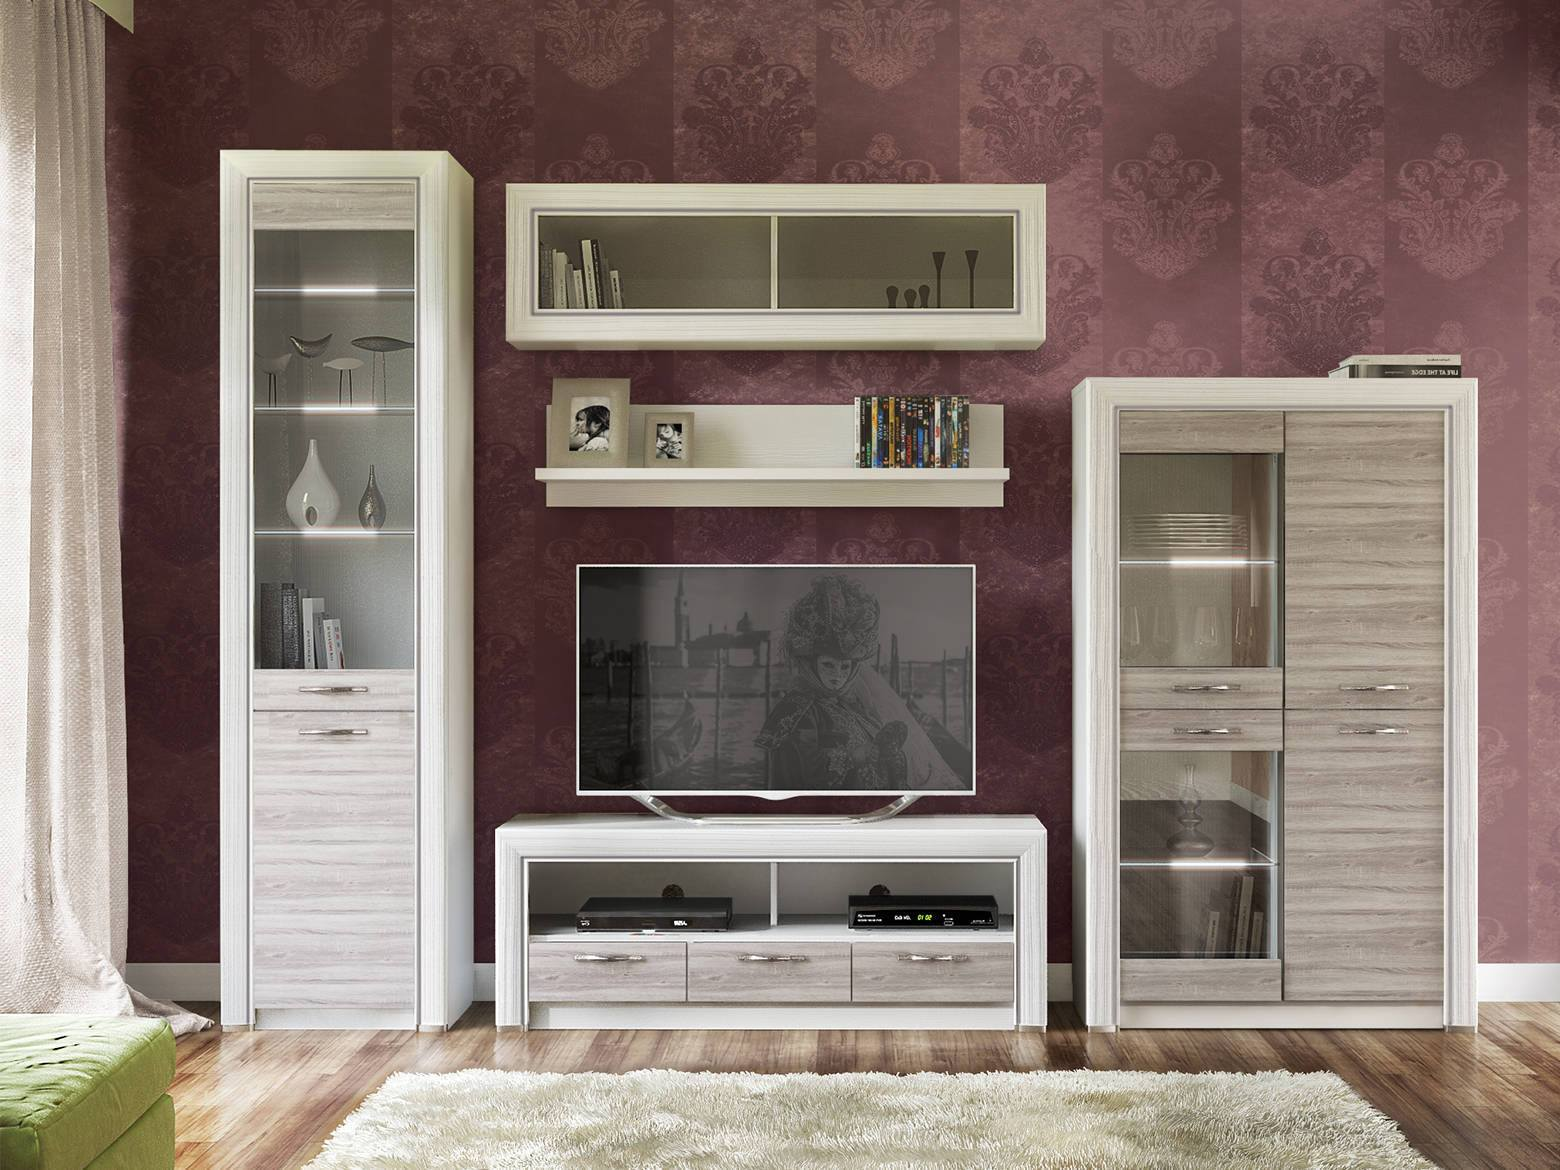 Living Room Cabinet Furniture to Add Practilcal Solutions to the Interior. Ruby colored walls and furniture set with glass inlays